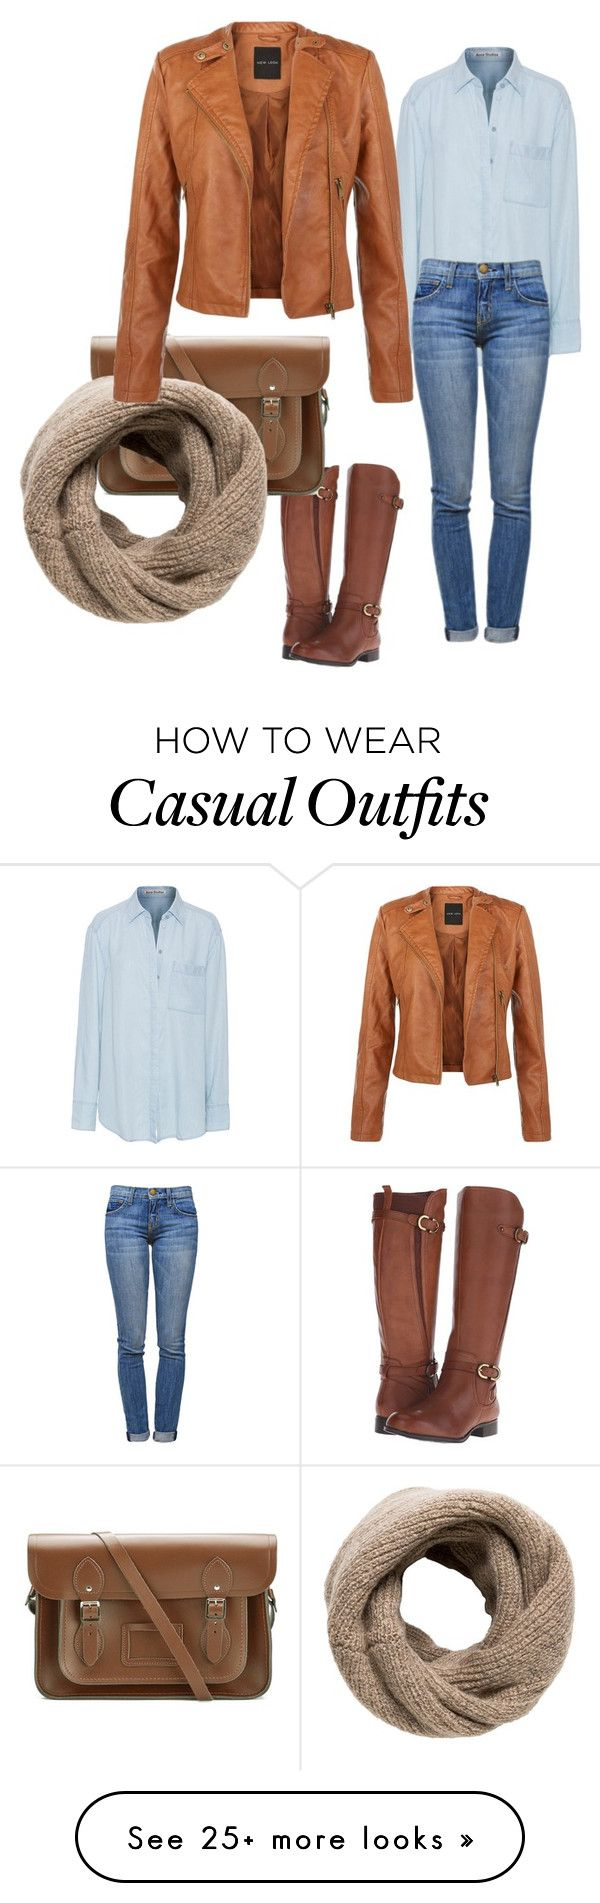 """Casual Blues & Browns"" by sue-sinclair-kenyon on Polyvore featuring Naturalizer, The Cambridge Satchel Company, MANGO, Acne Studios, Current/Elliott and like"